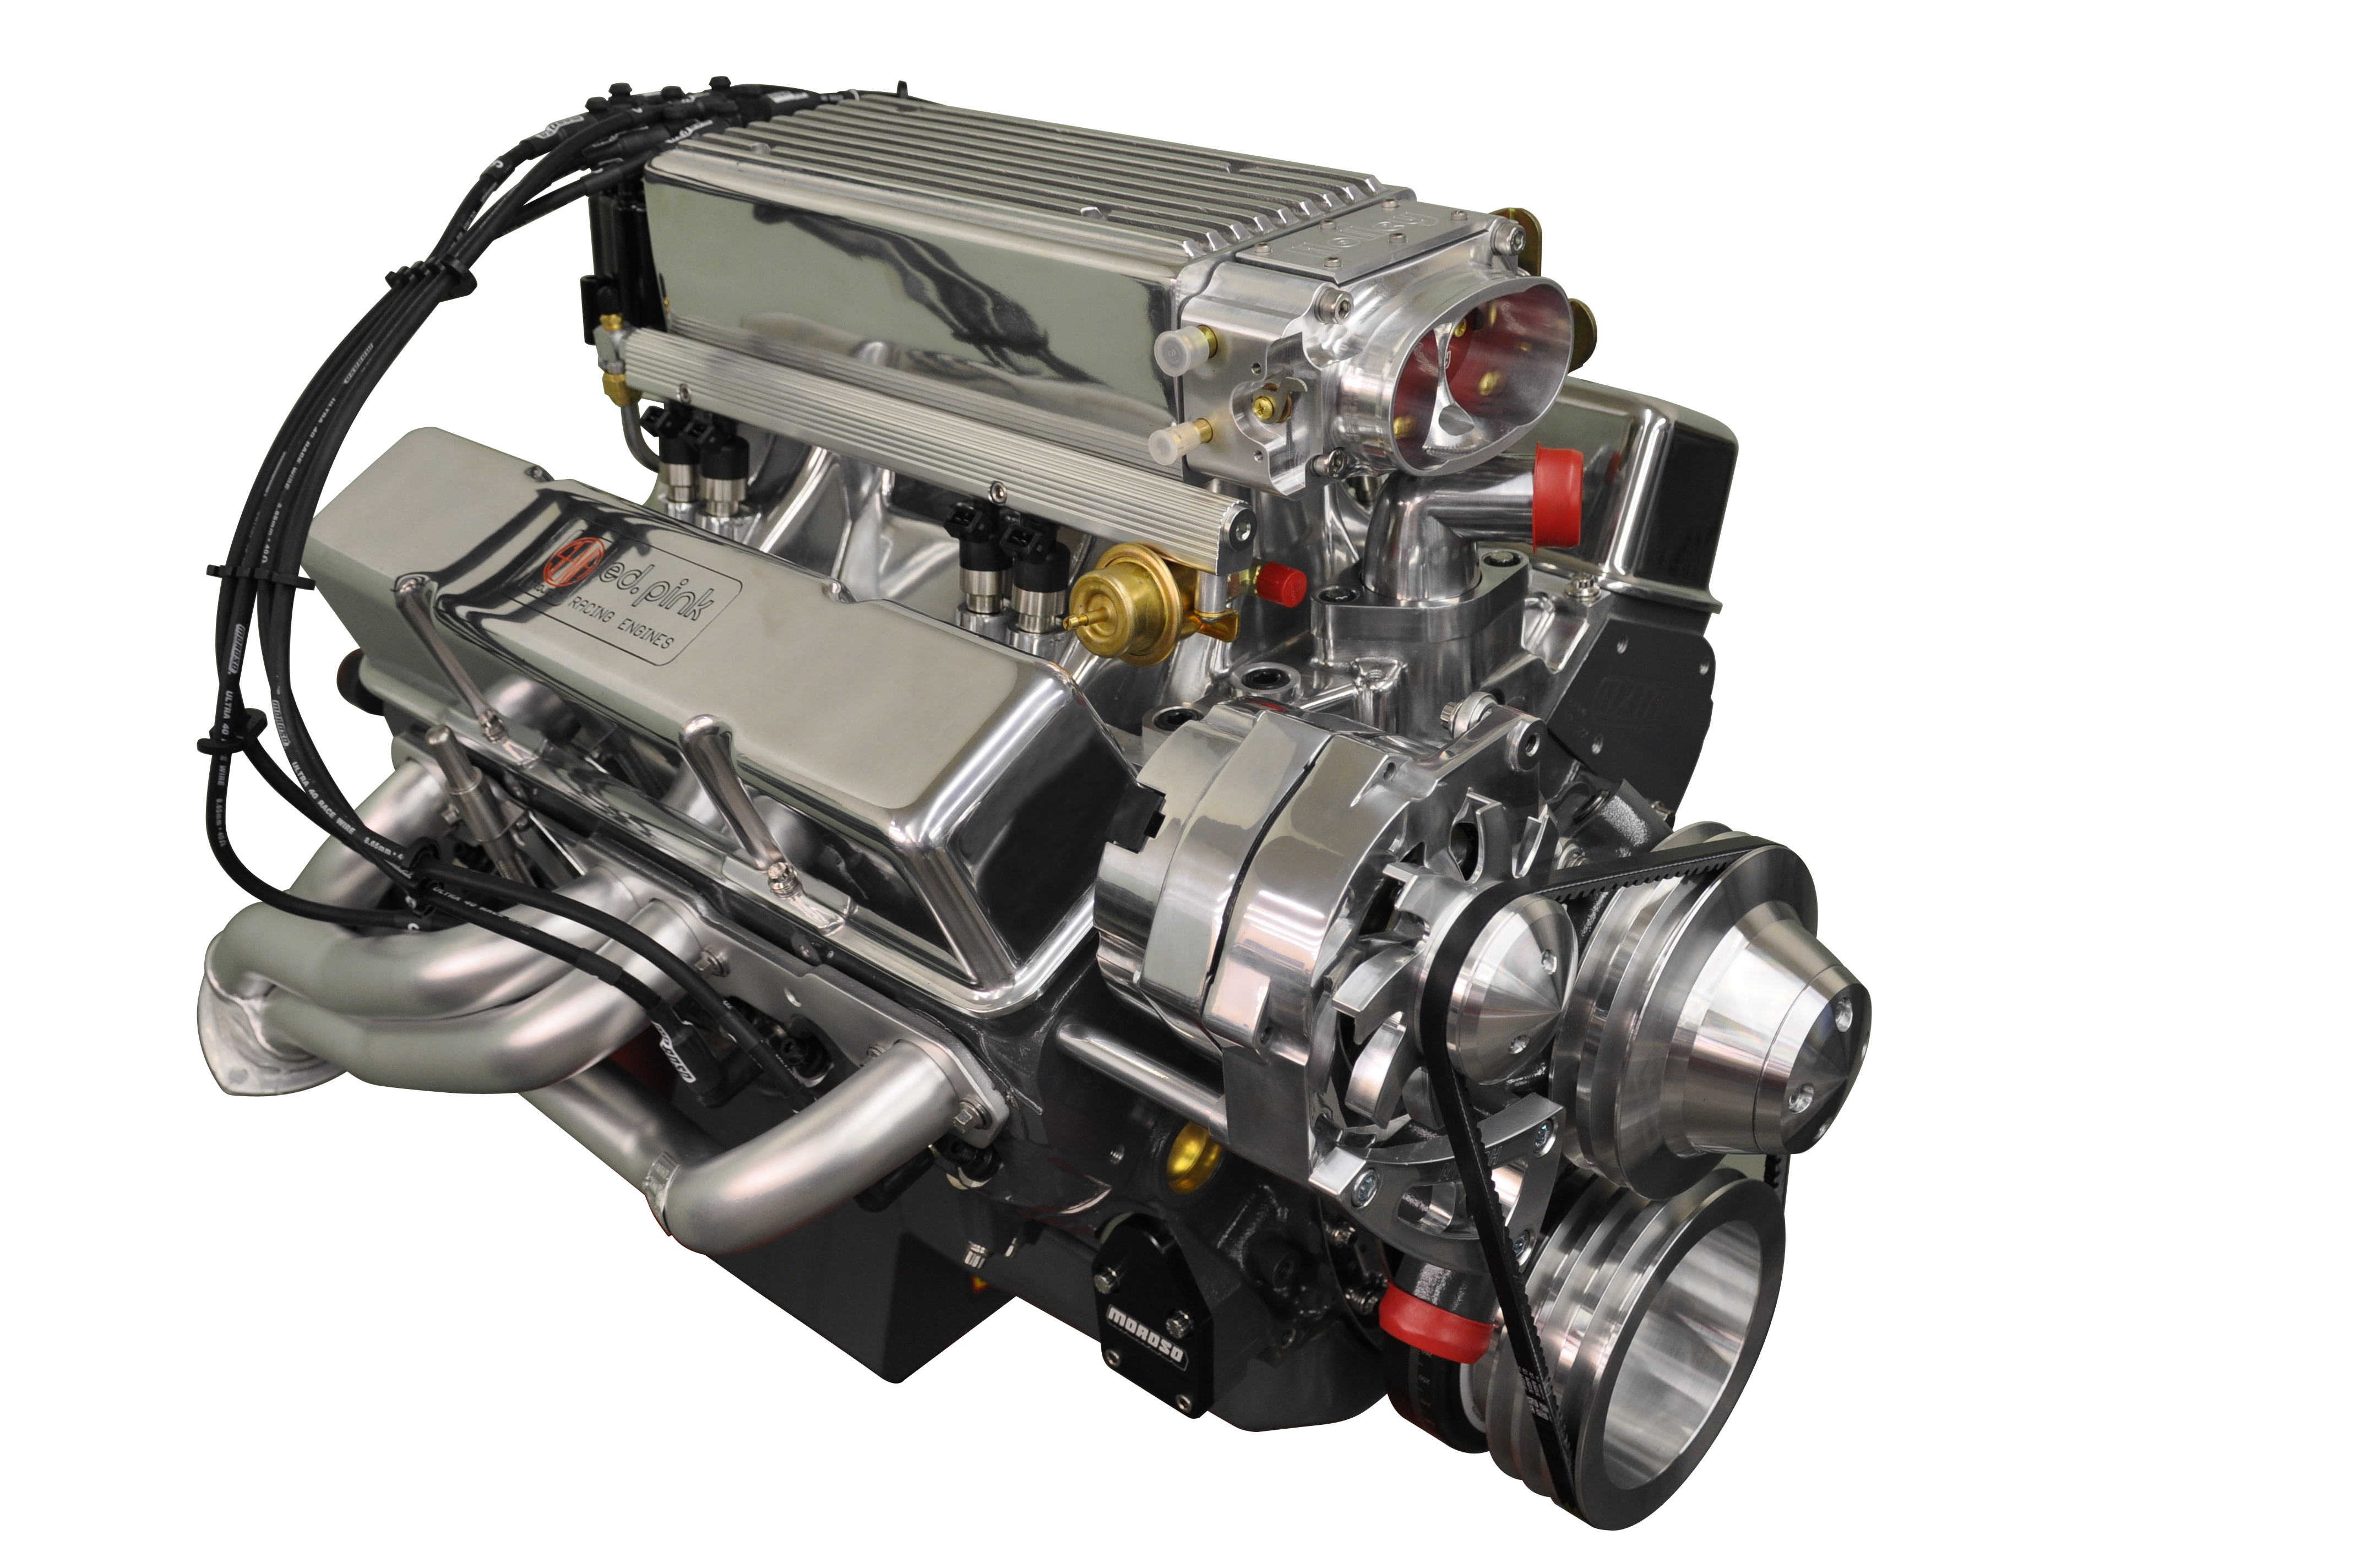 Get your own engine built at SEMA